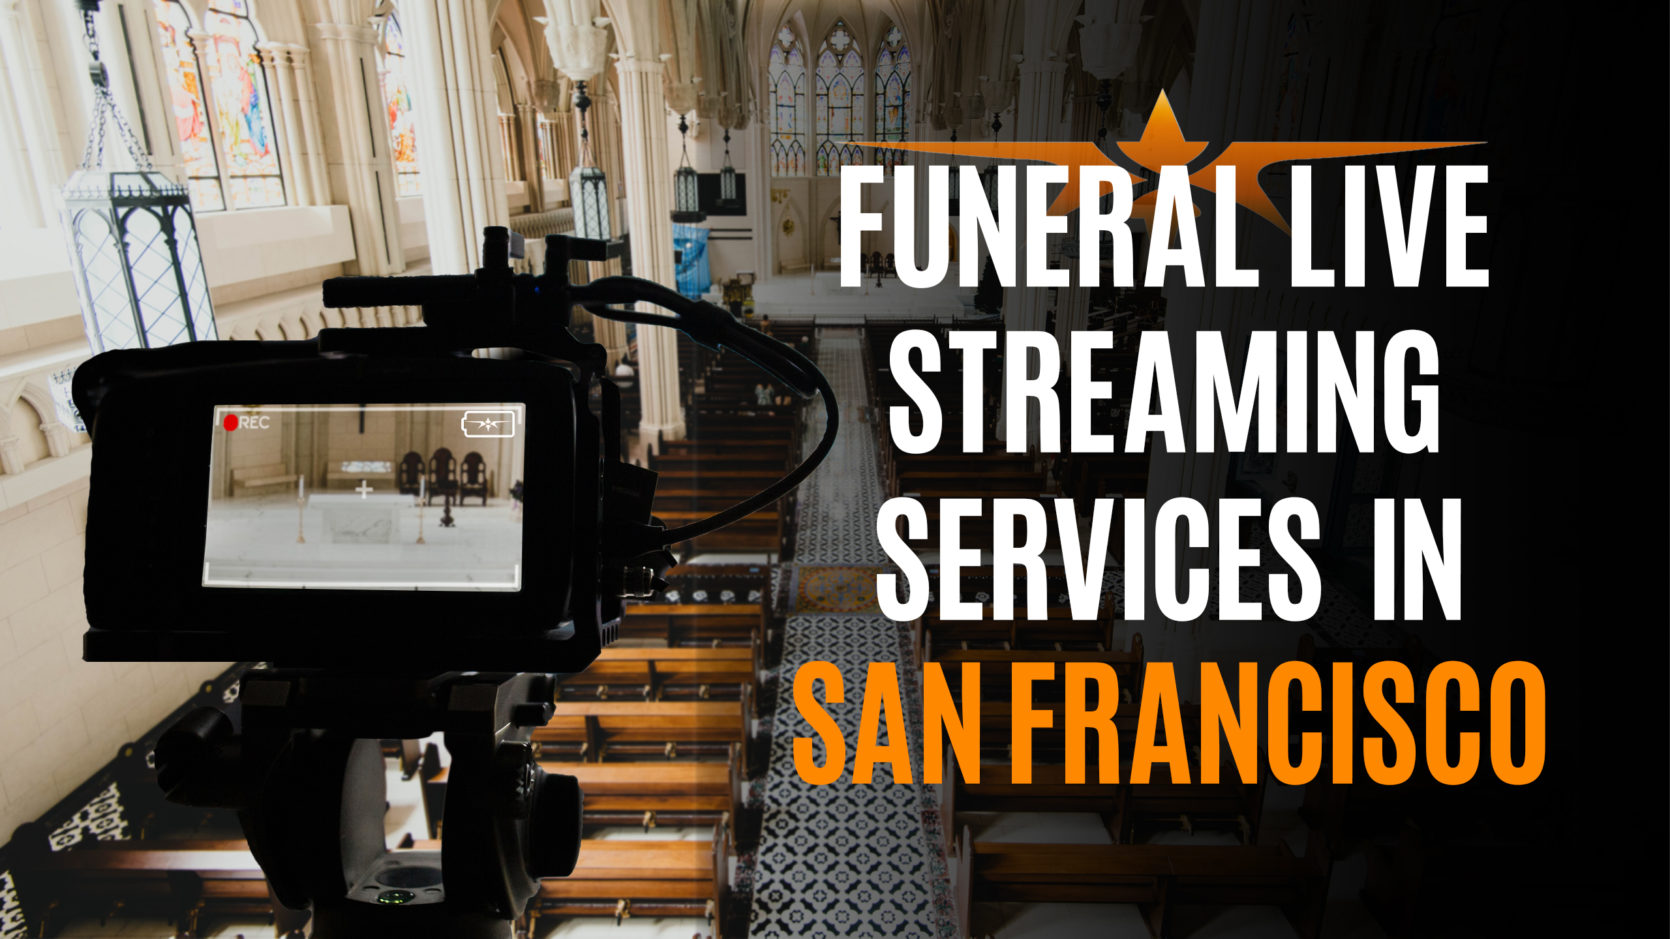 Funeral Live Streaming Services in San Francisco